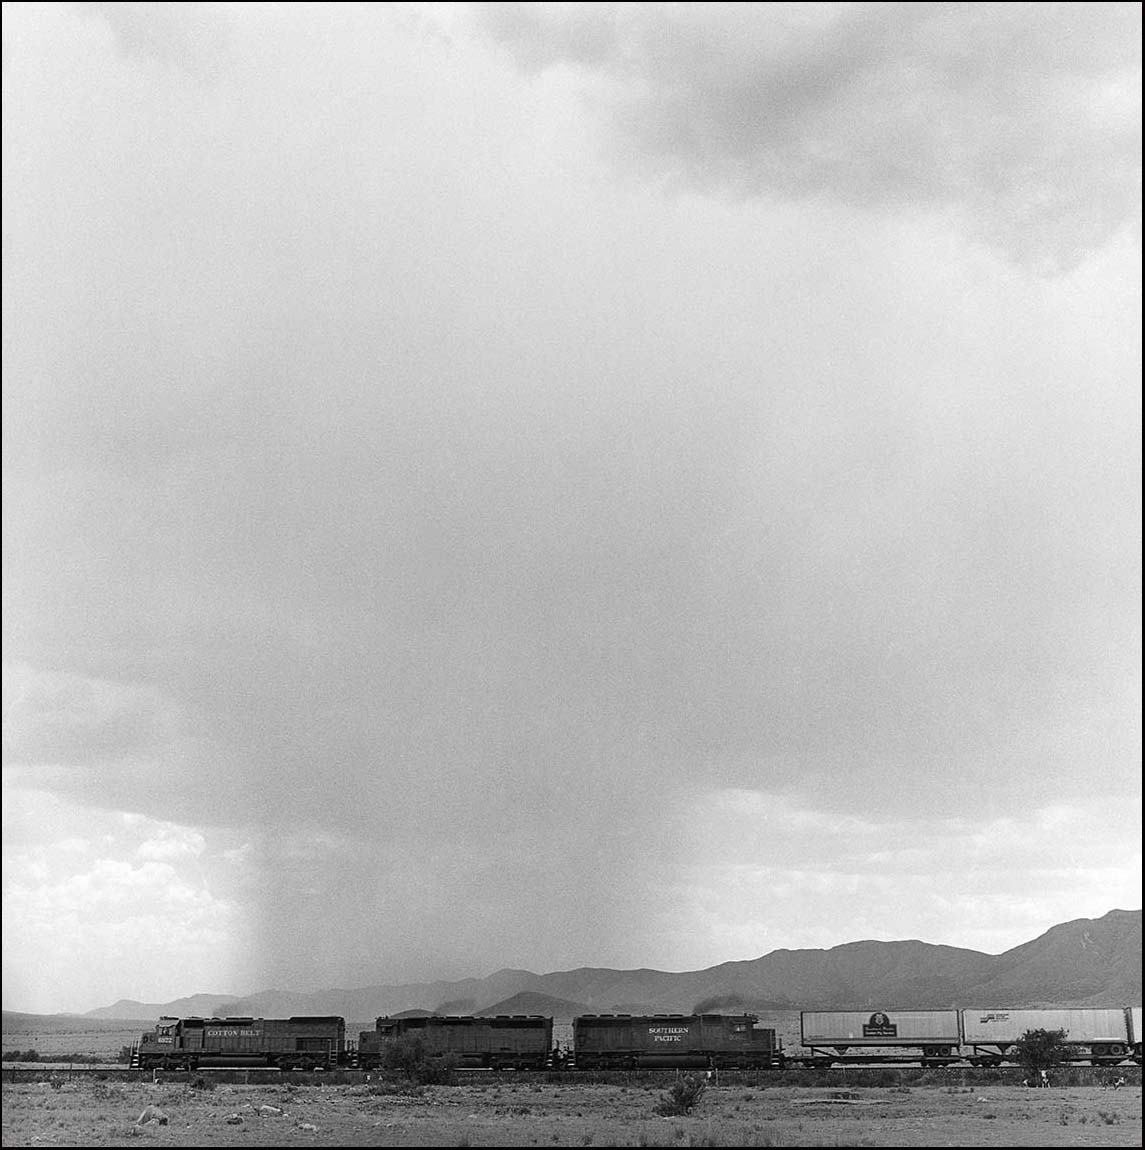 TrainandIsolatedRain